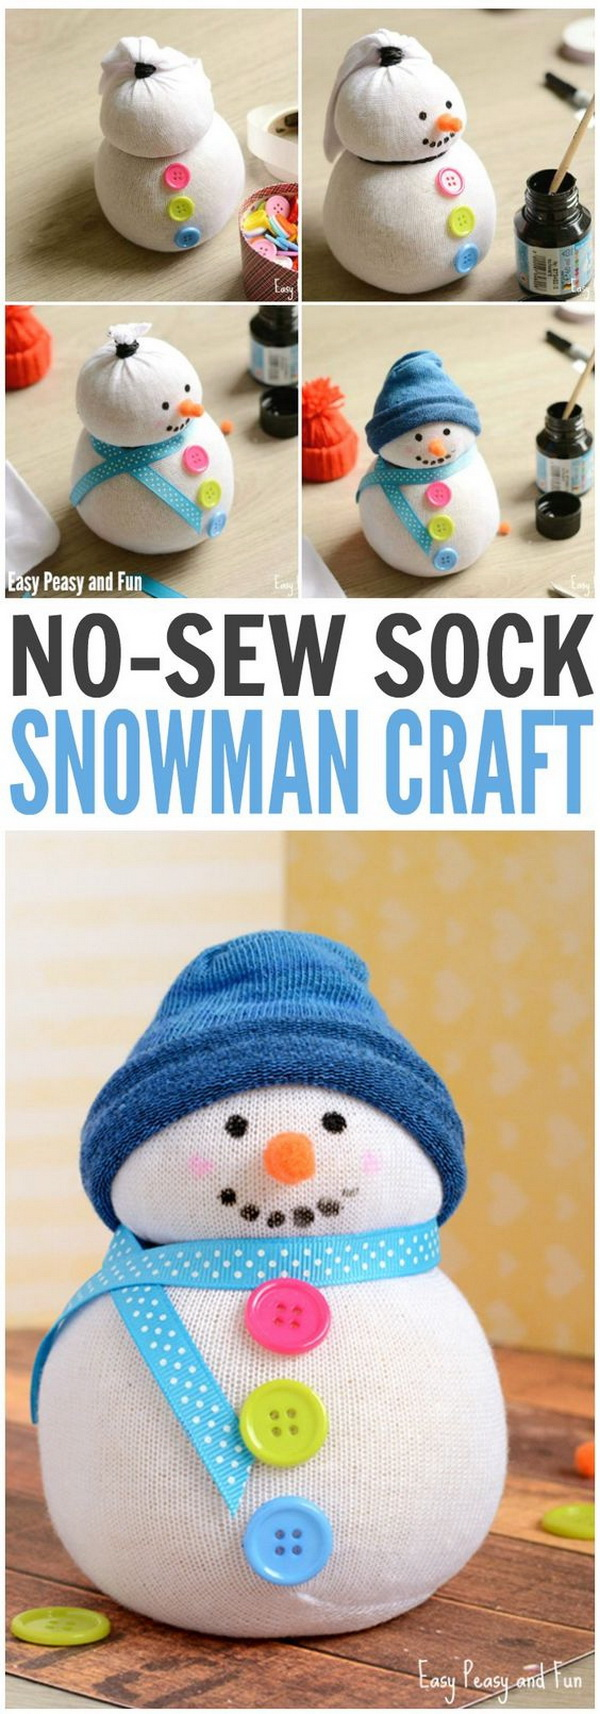 35+ Easy and Fun DIY Christmas Crafts for You and Your Kids to Have ...